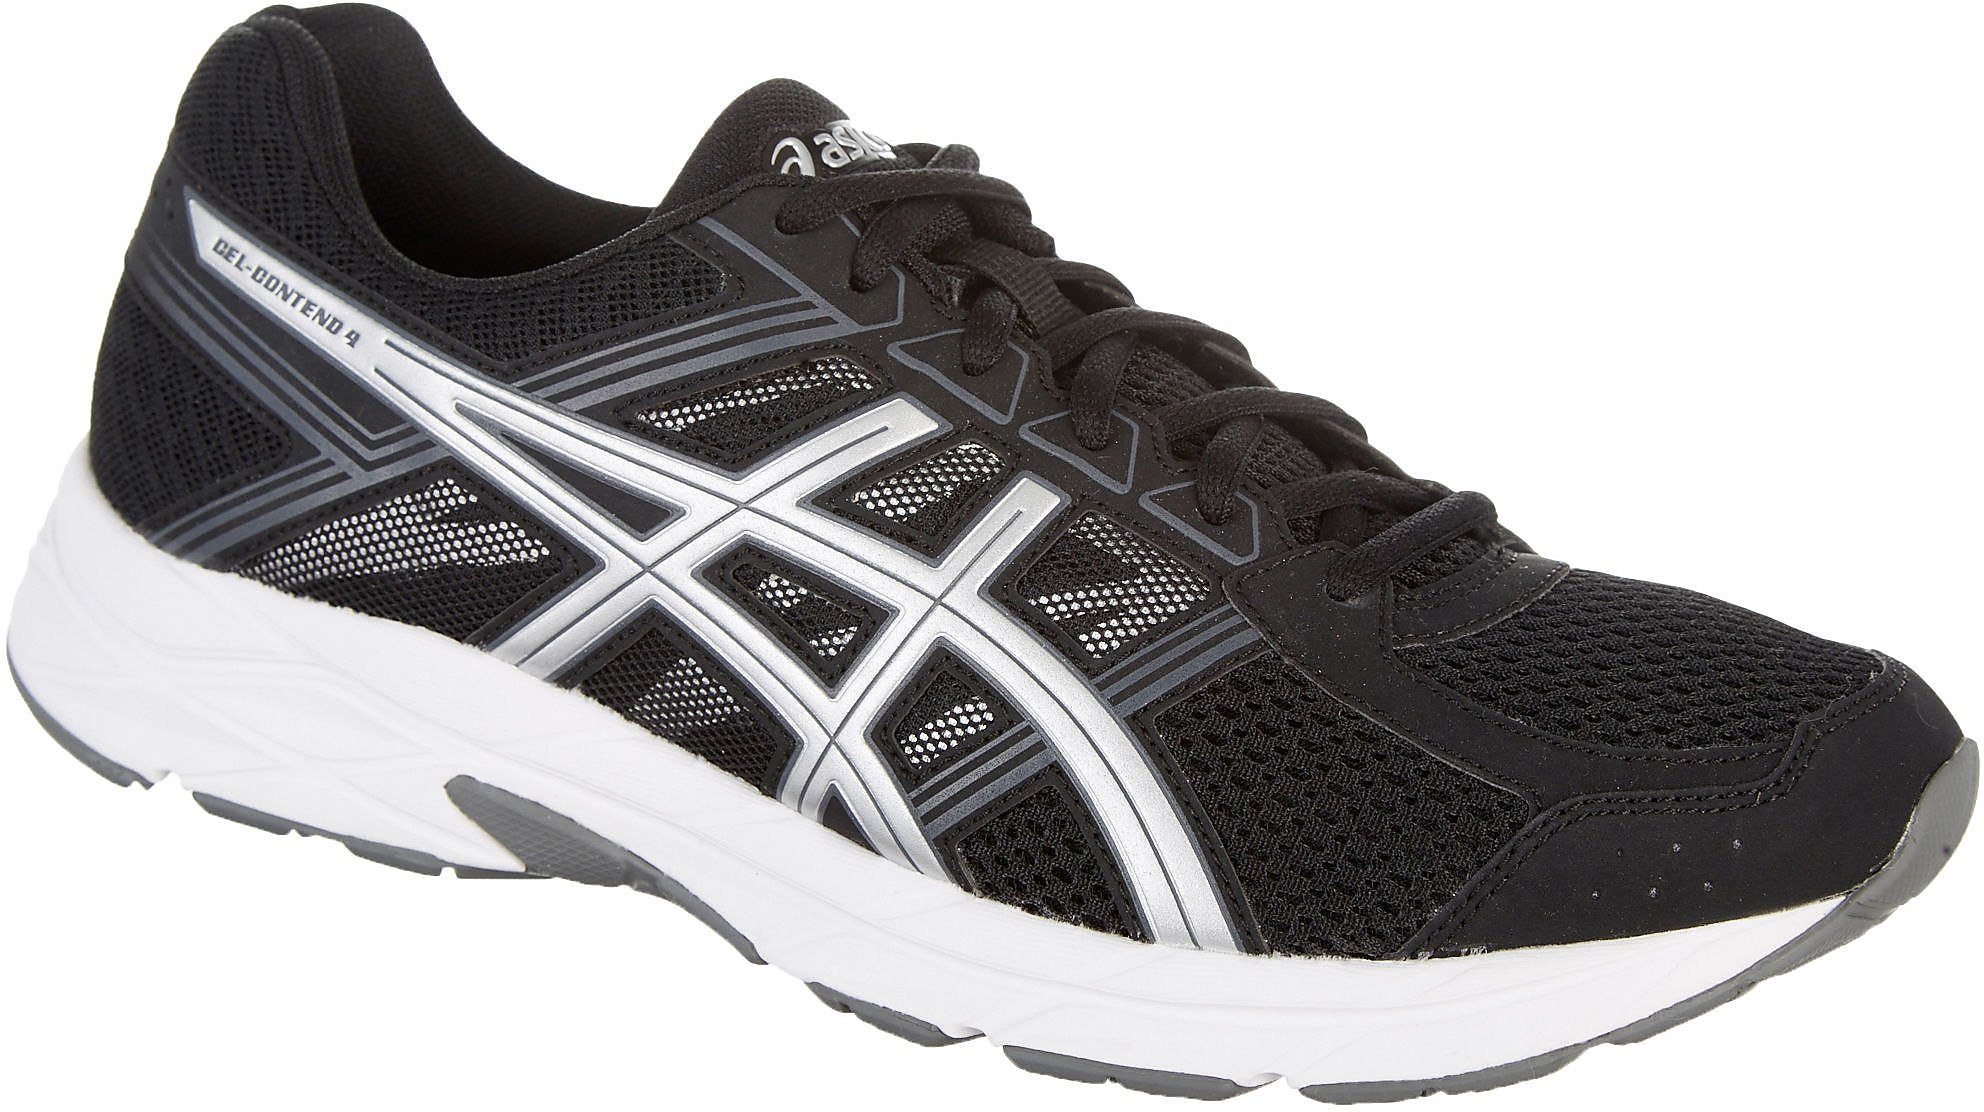 69ae815a9cc81 Asics Mens Gel Contend 4 Athletic Shoes | eBay